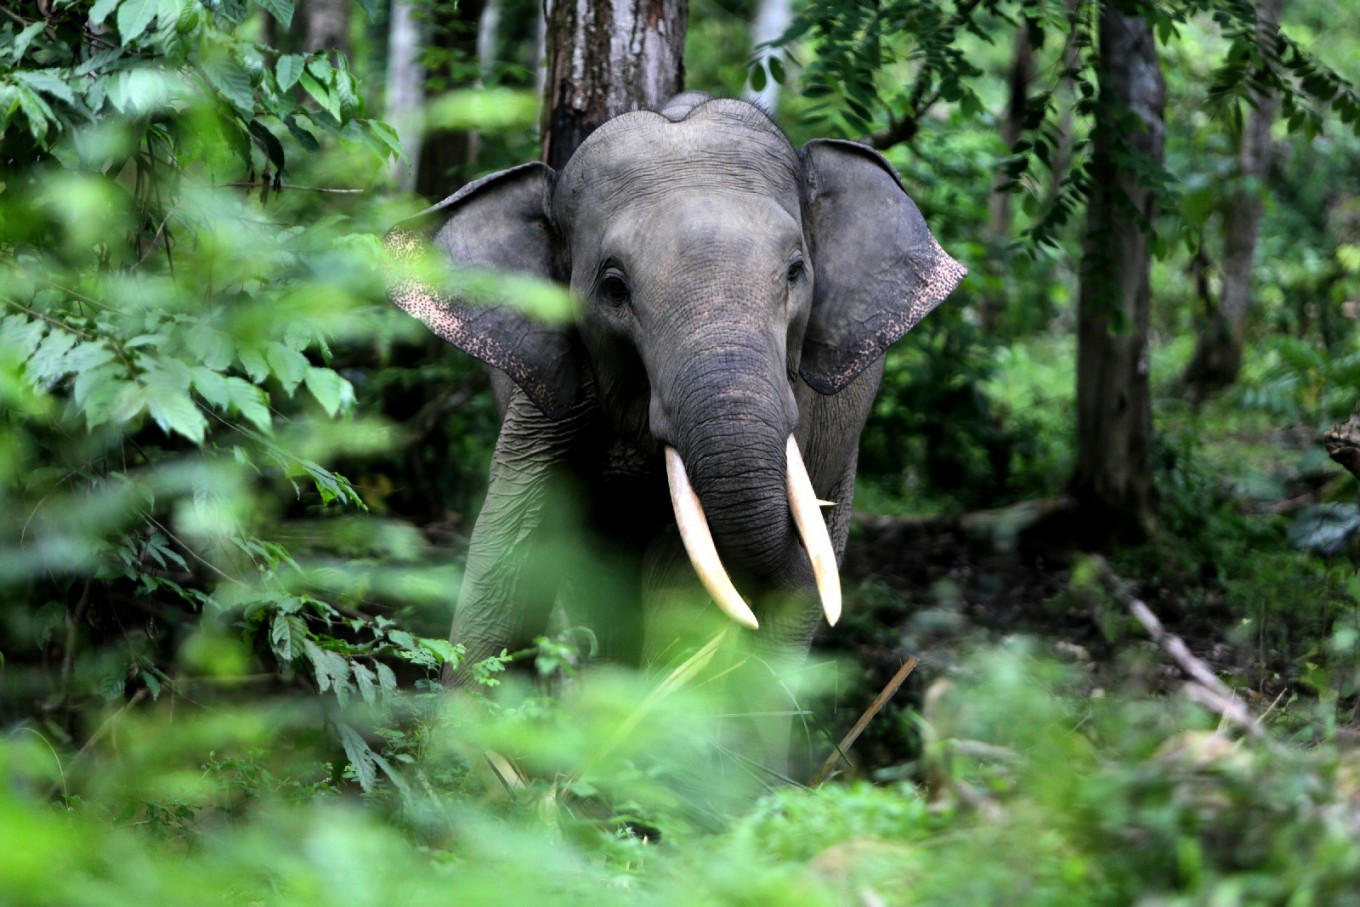 Roaming elephants, tiger trouble Jambi residents